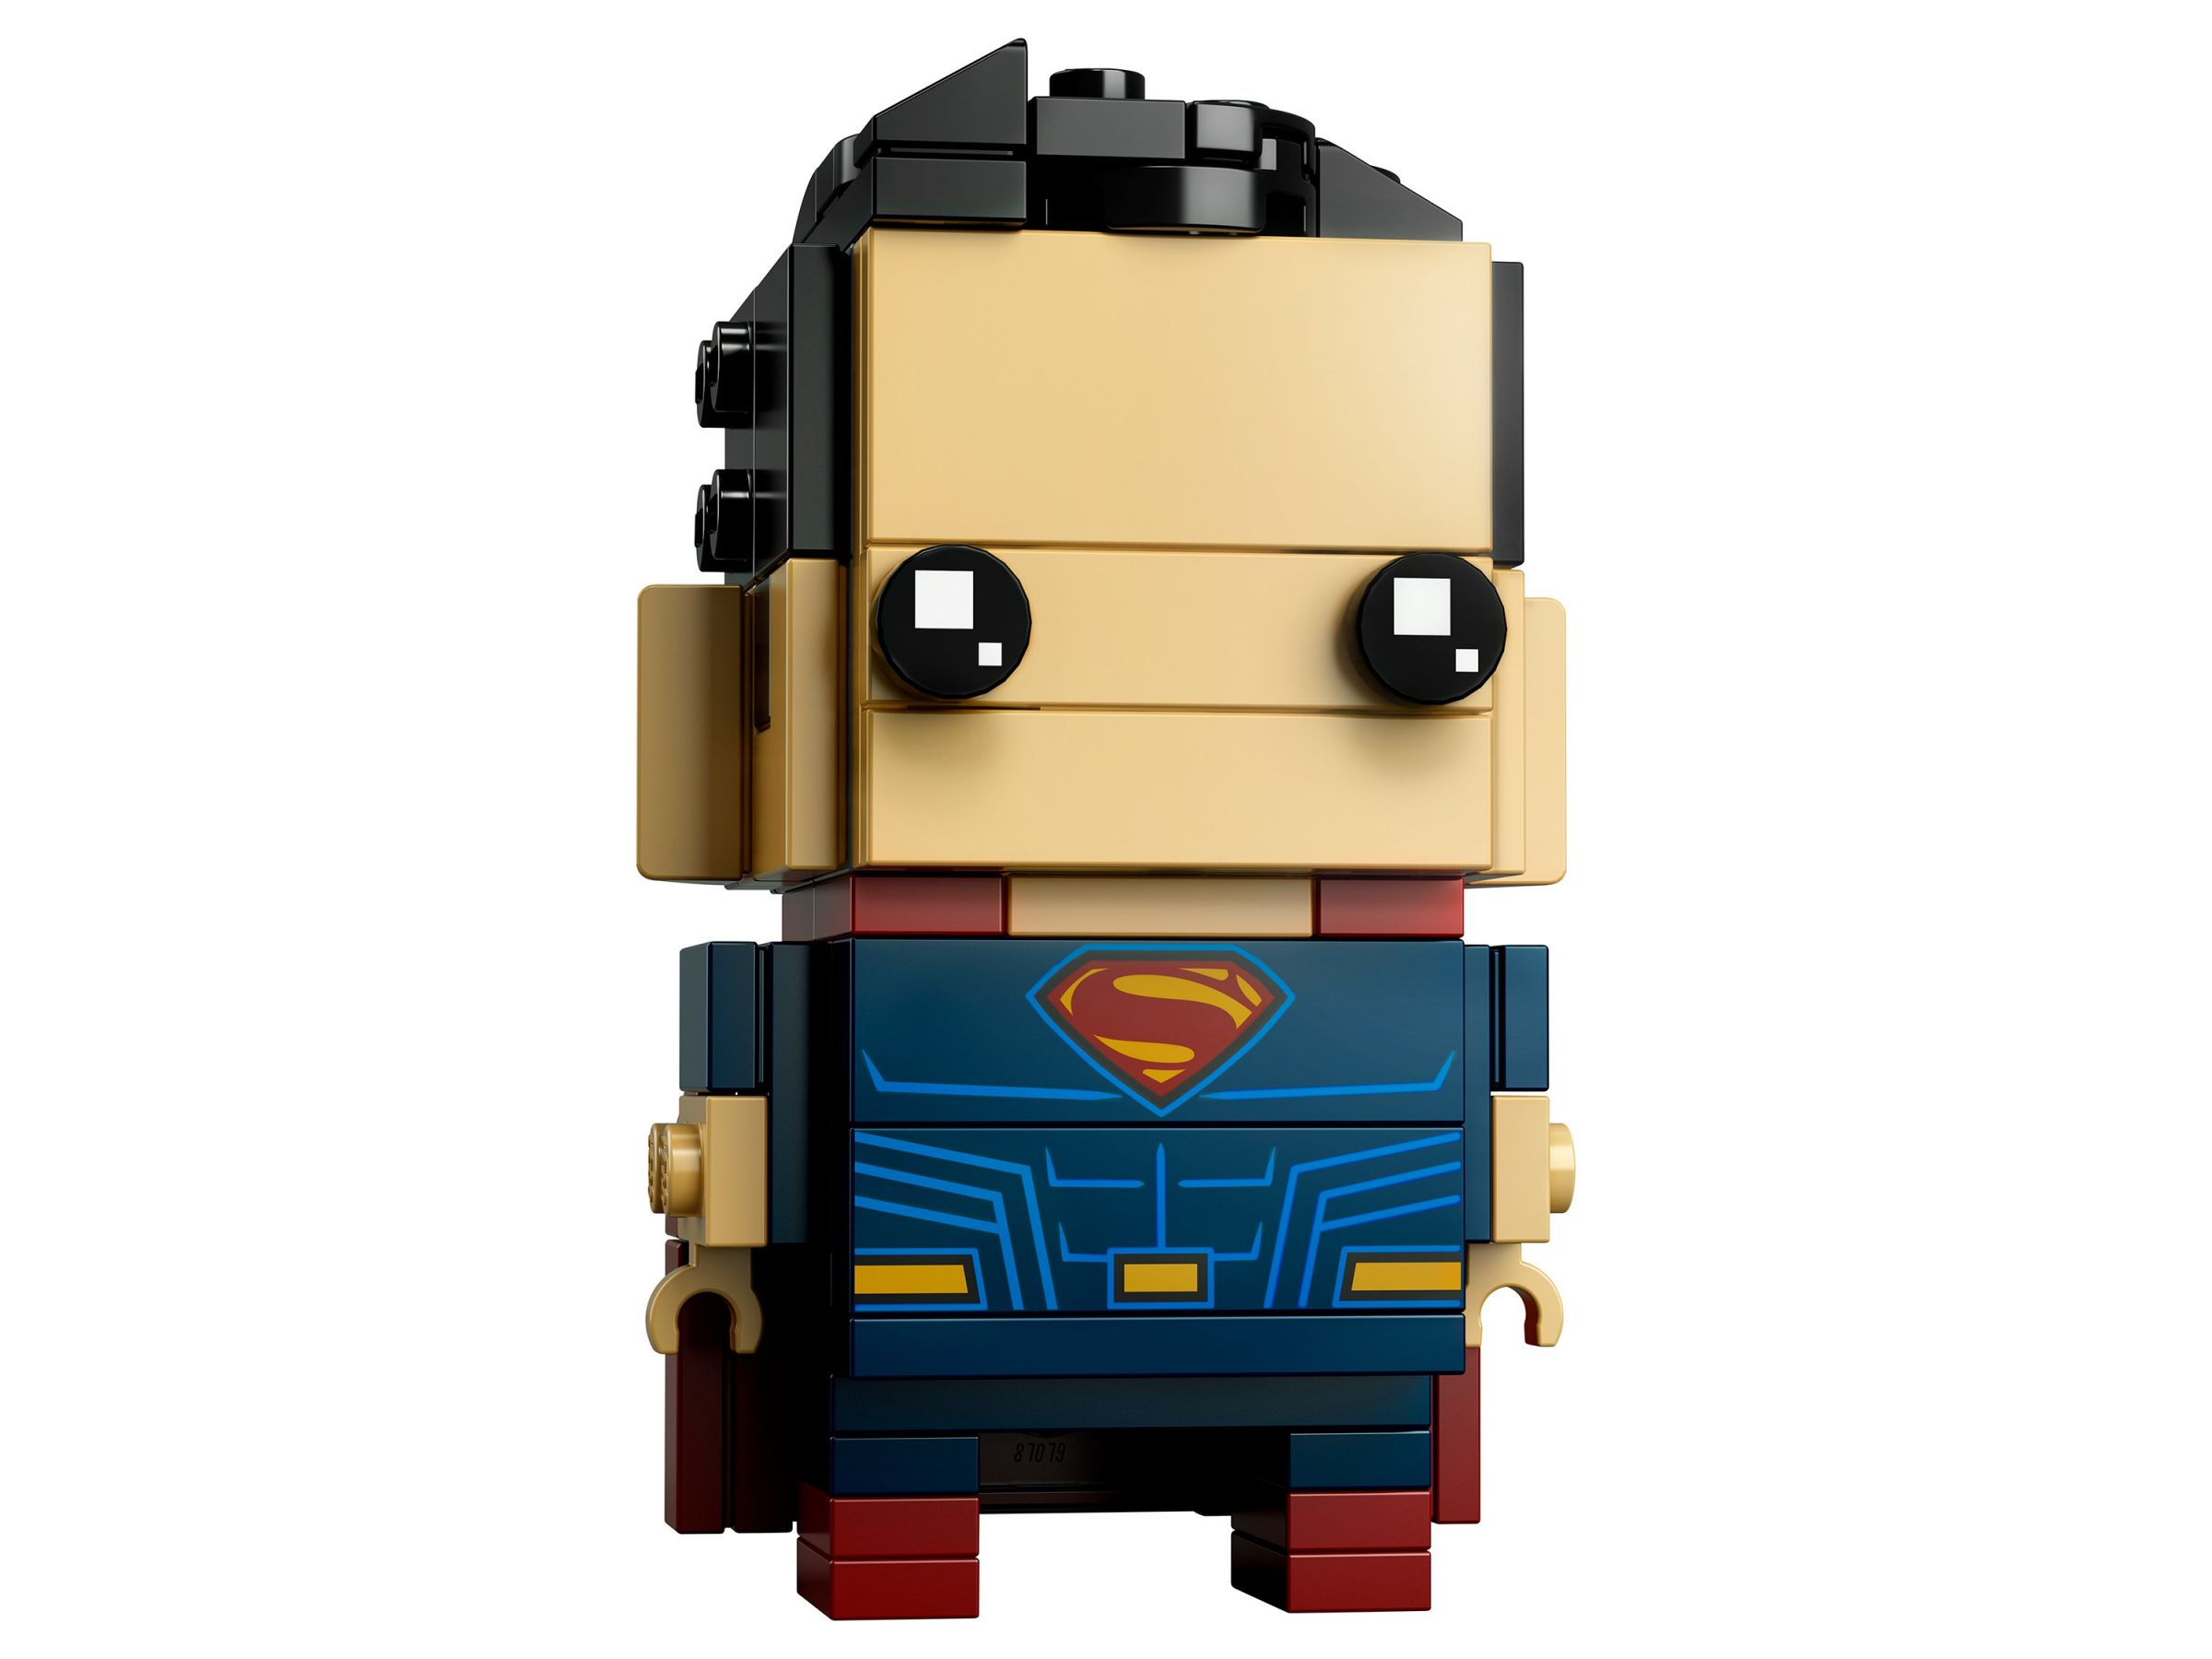 LEGO BrickHeadz 41610 Tactical Batman™ & Superman™ LEGO_BrickHeadz_41610_Tactical_Batman_Superman_img02.jpg